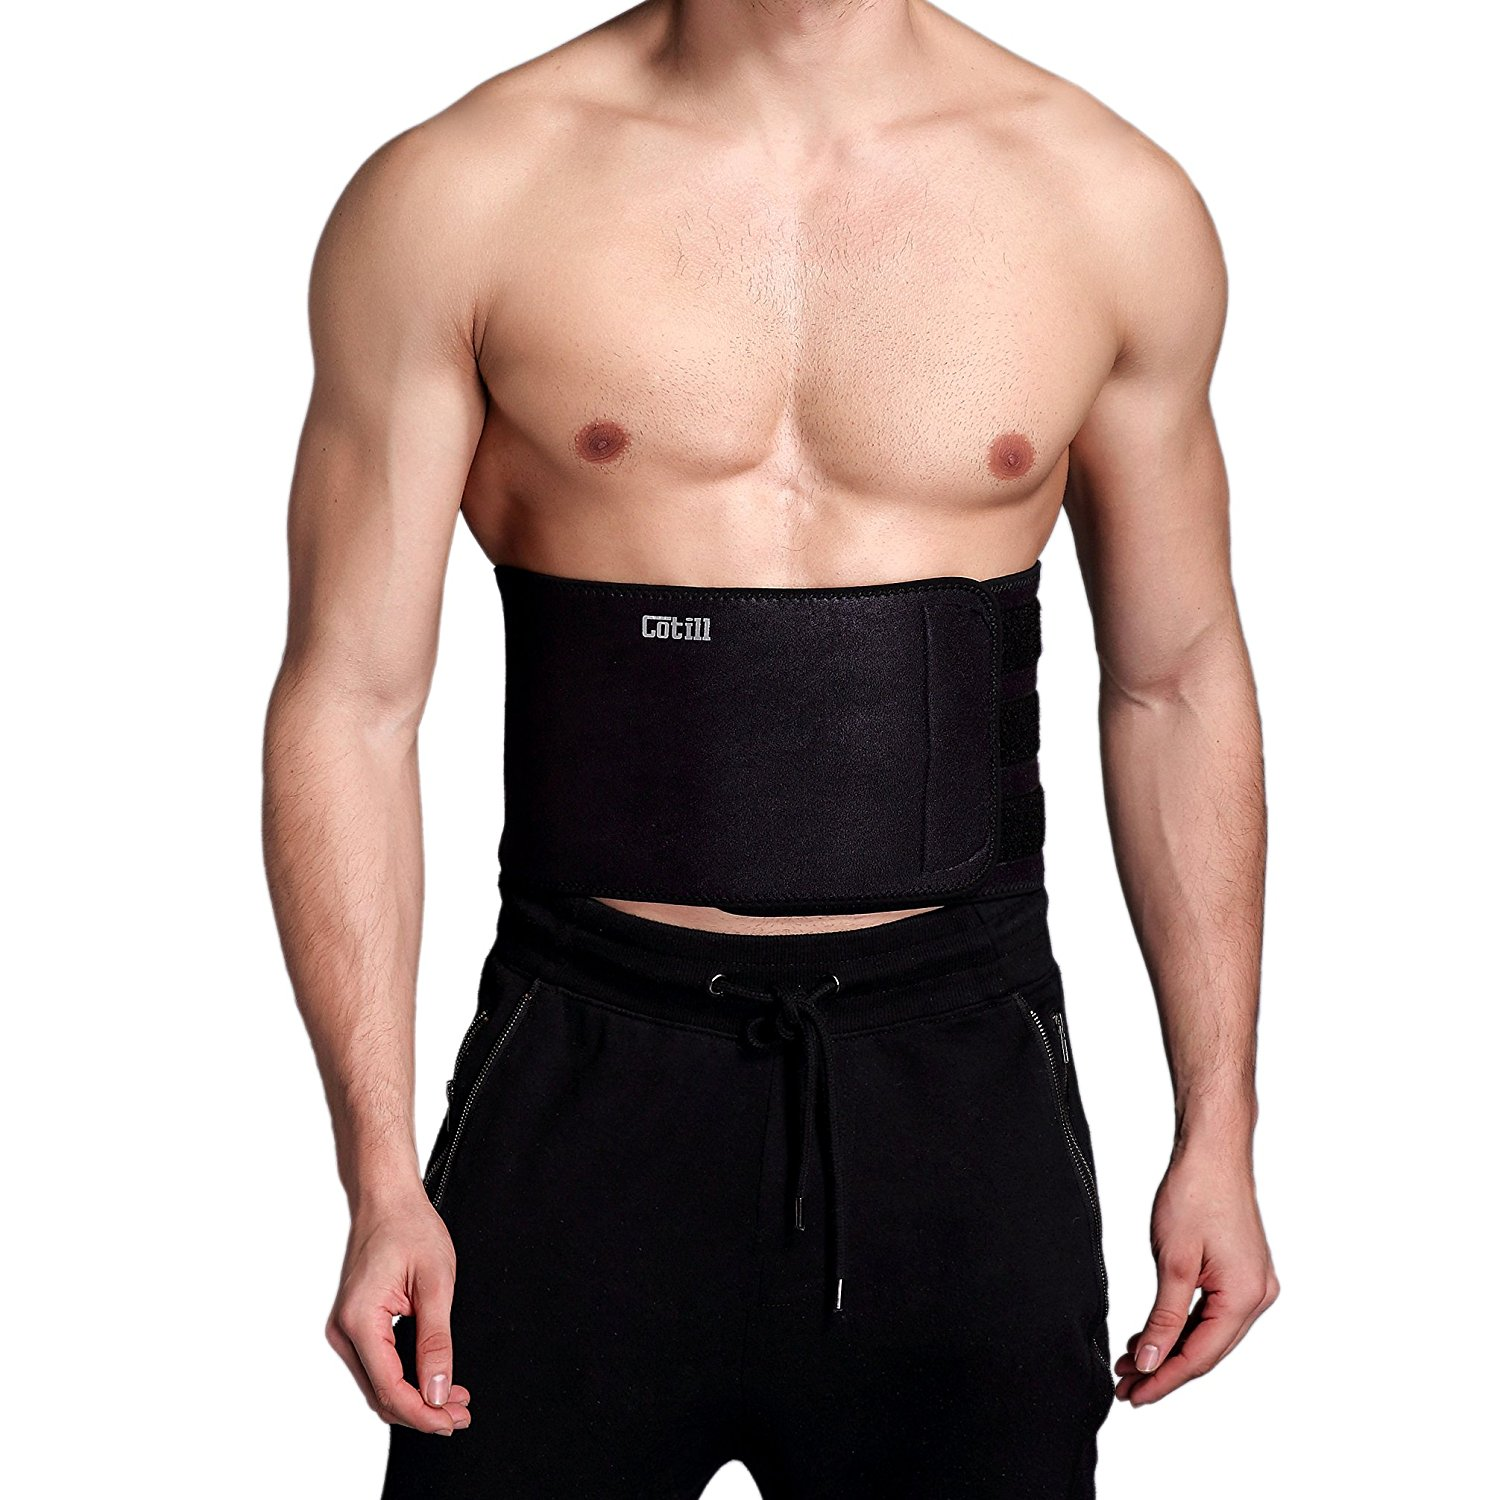 7e3dc51230 Top 15 Best Waist Trainer for Men in 2019 - Buyer s Guide